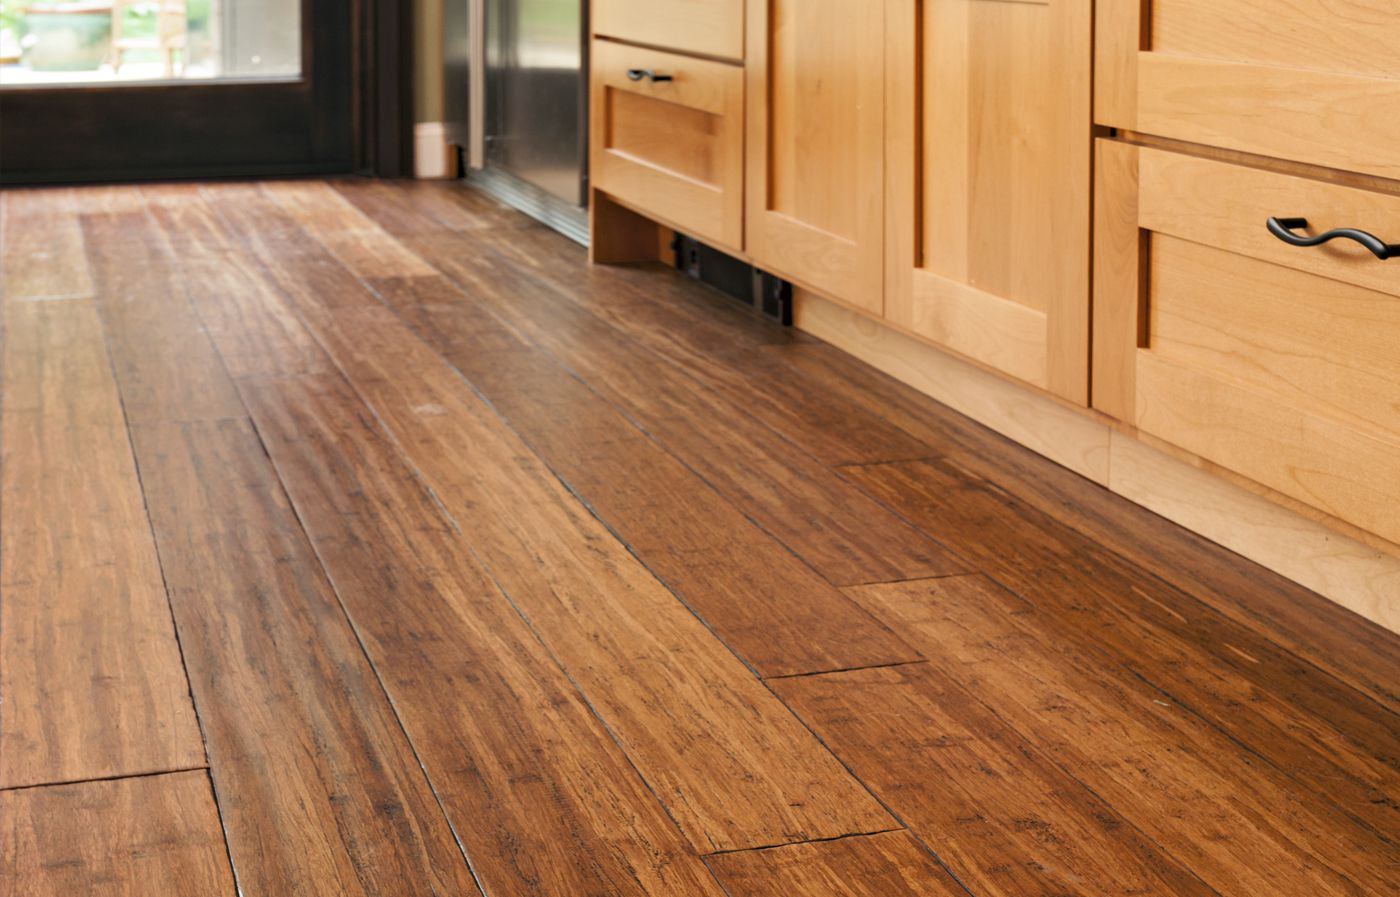 All about bamboo flooring dream home faux wainscoting